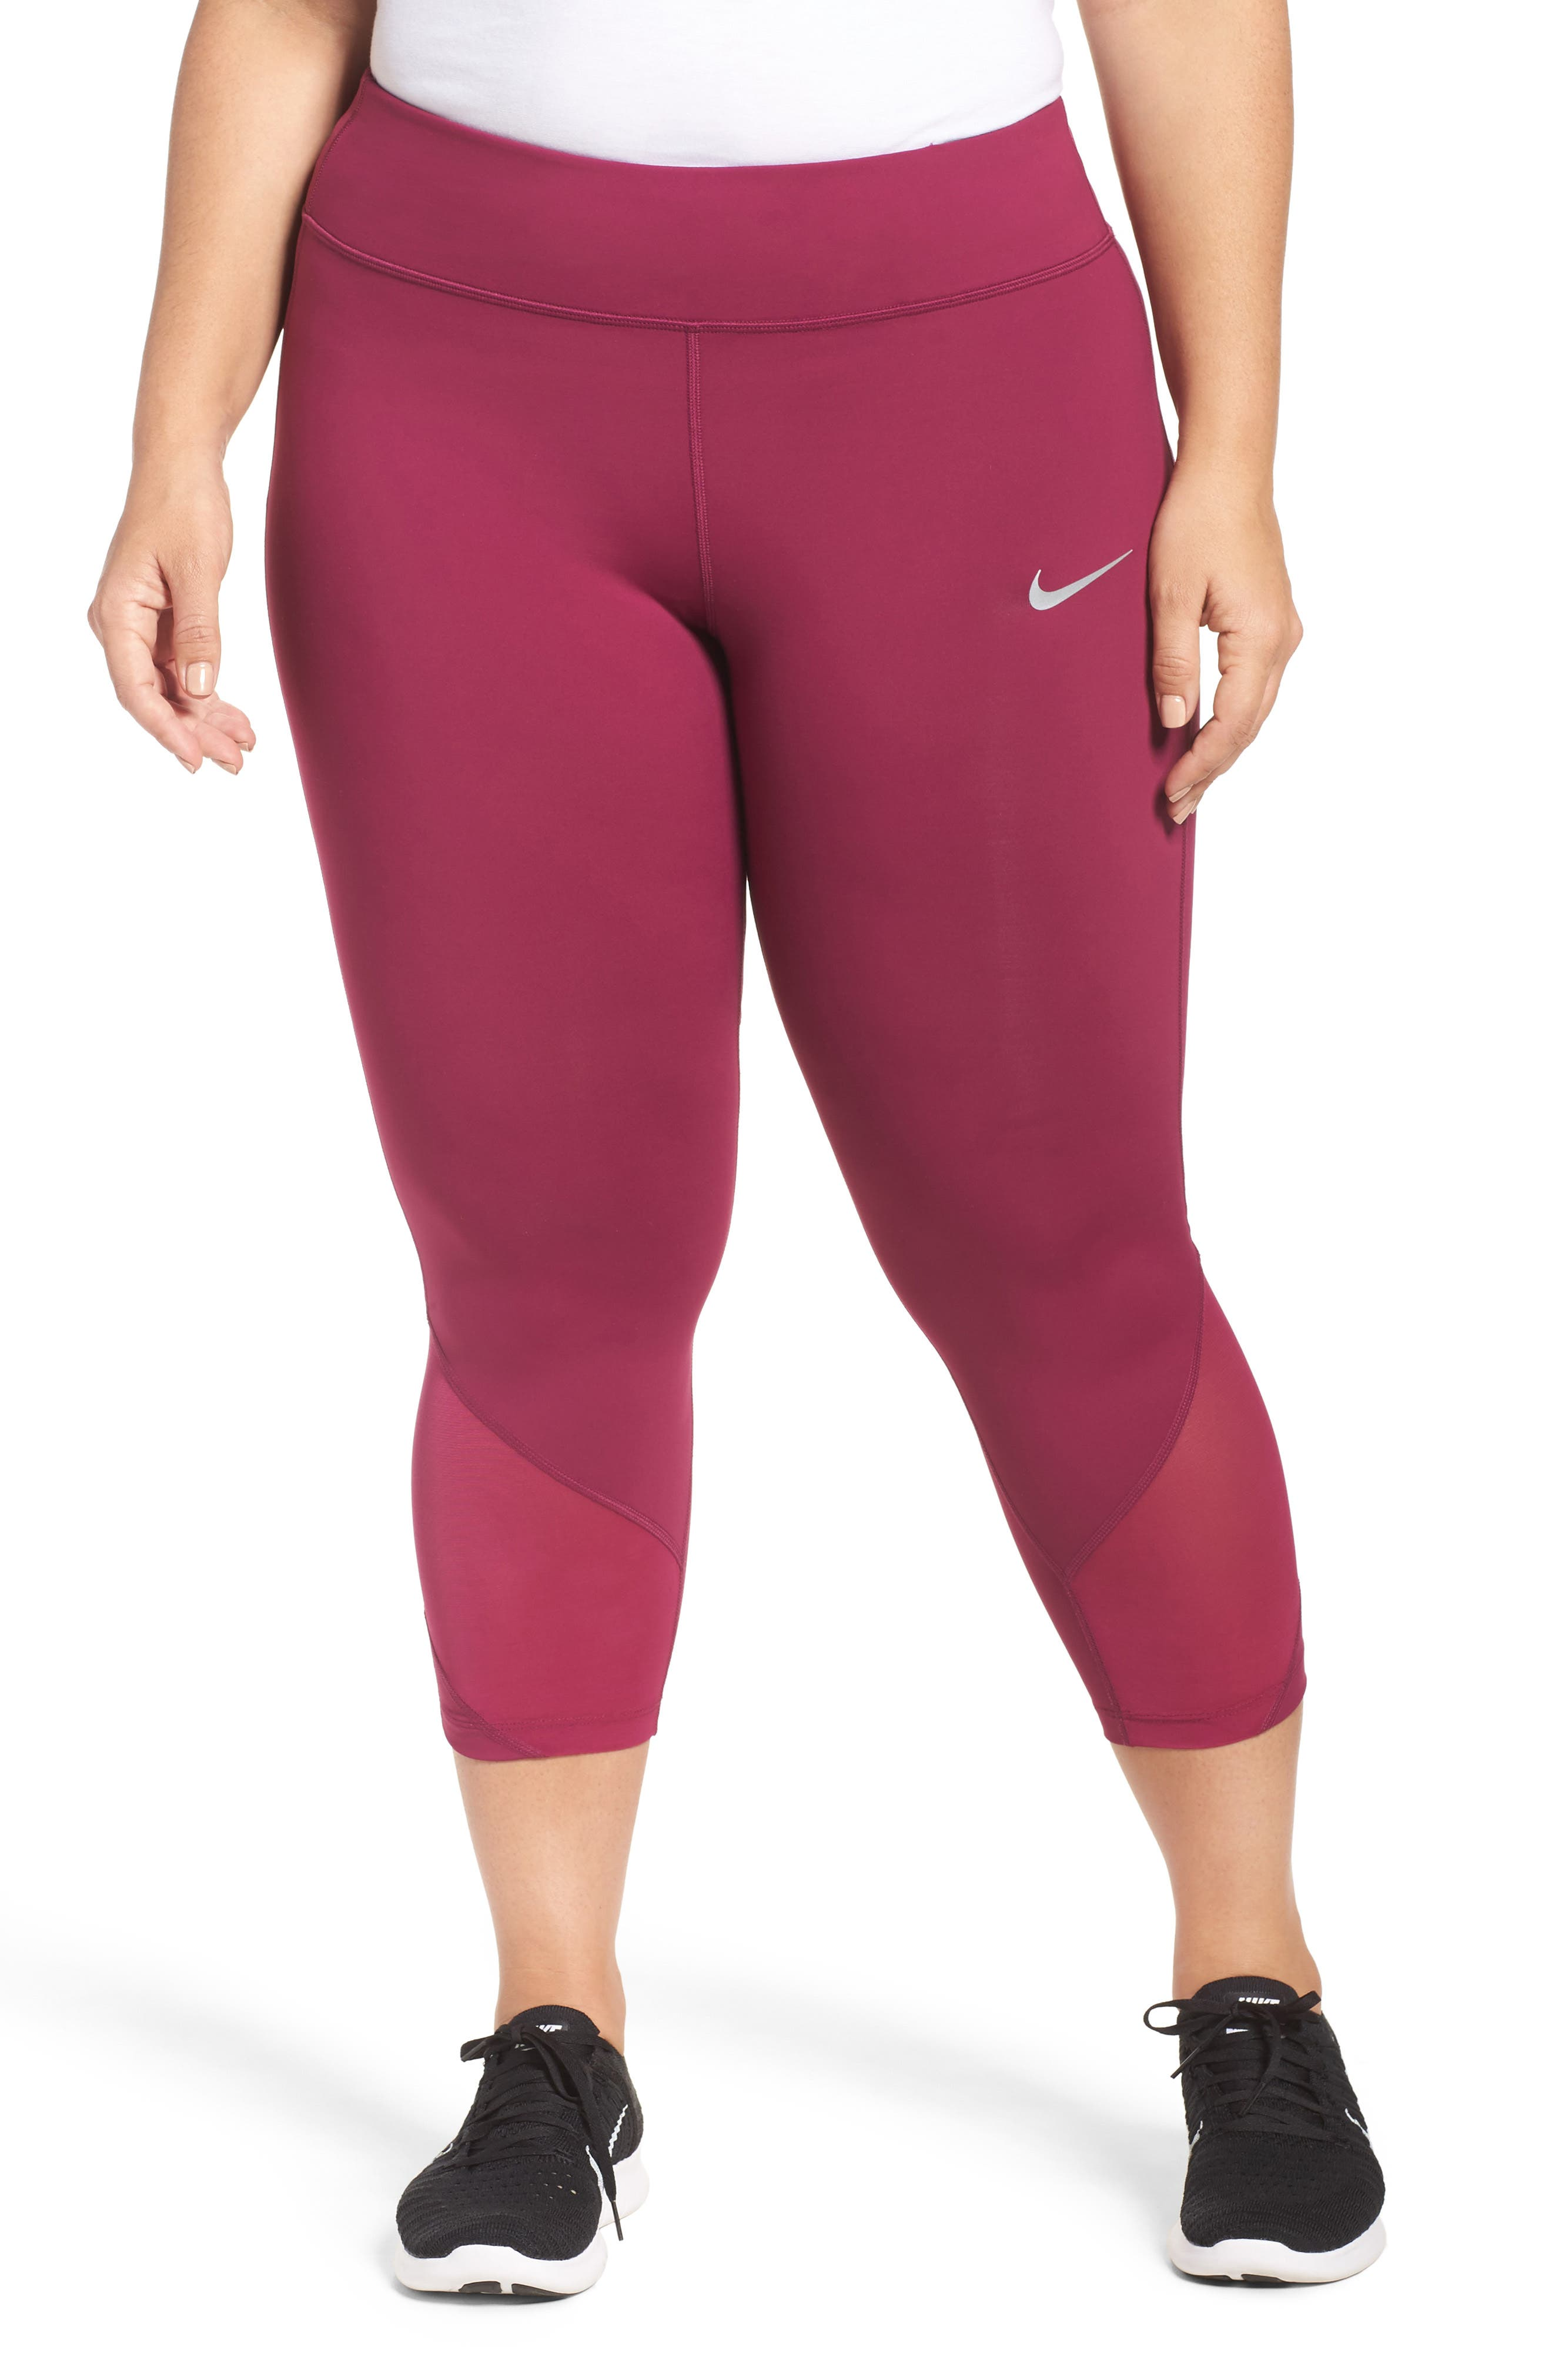 NIKE Power Epic Crop Run Tights